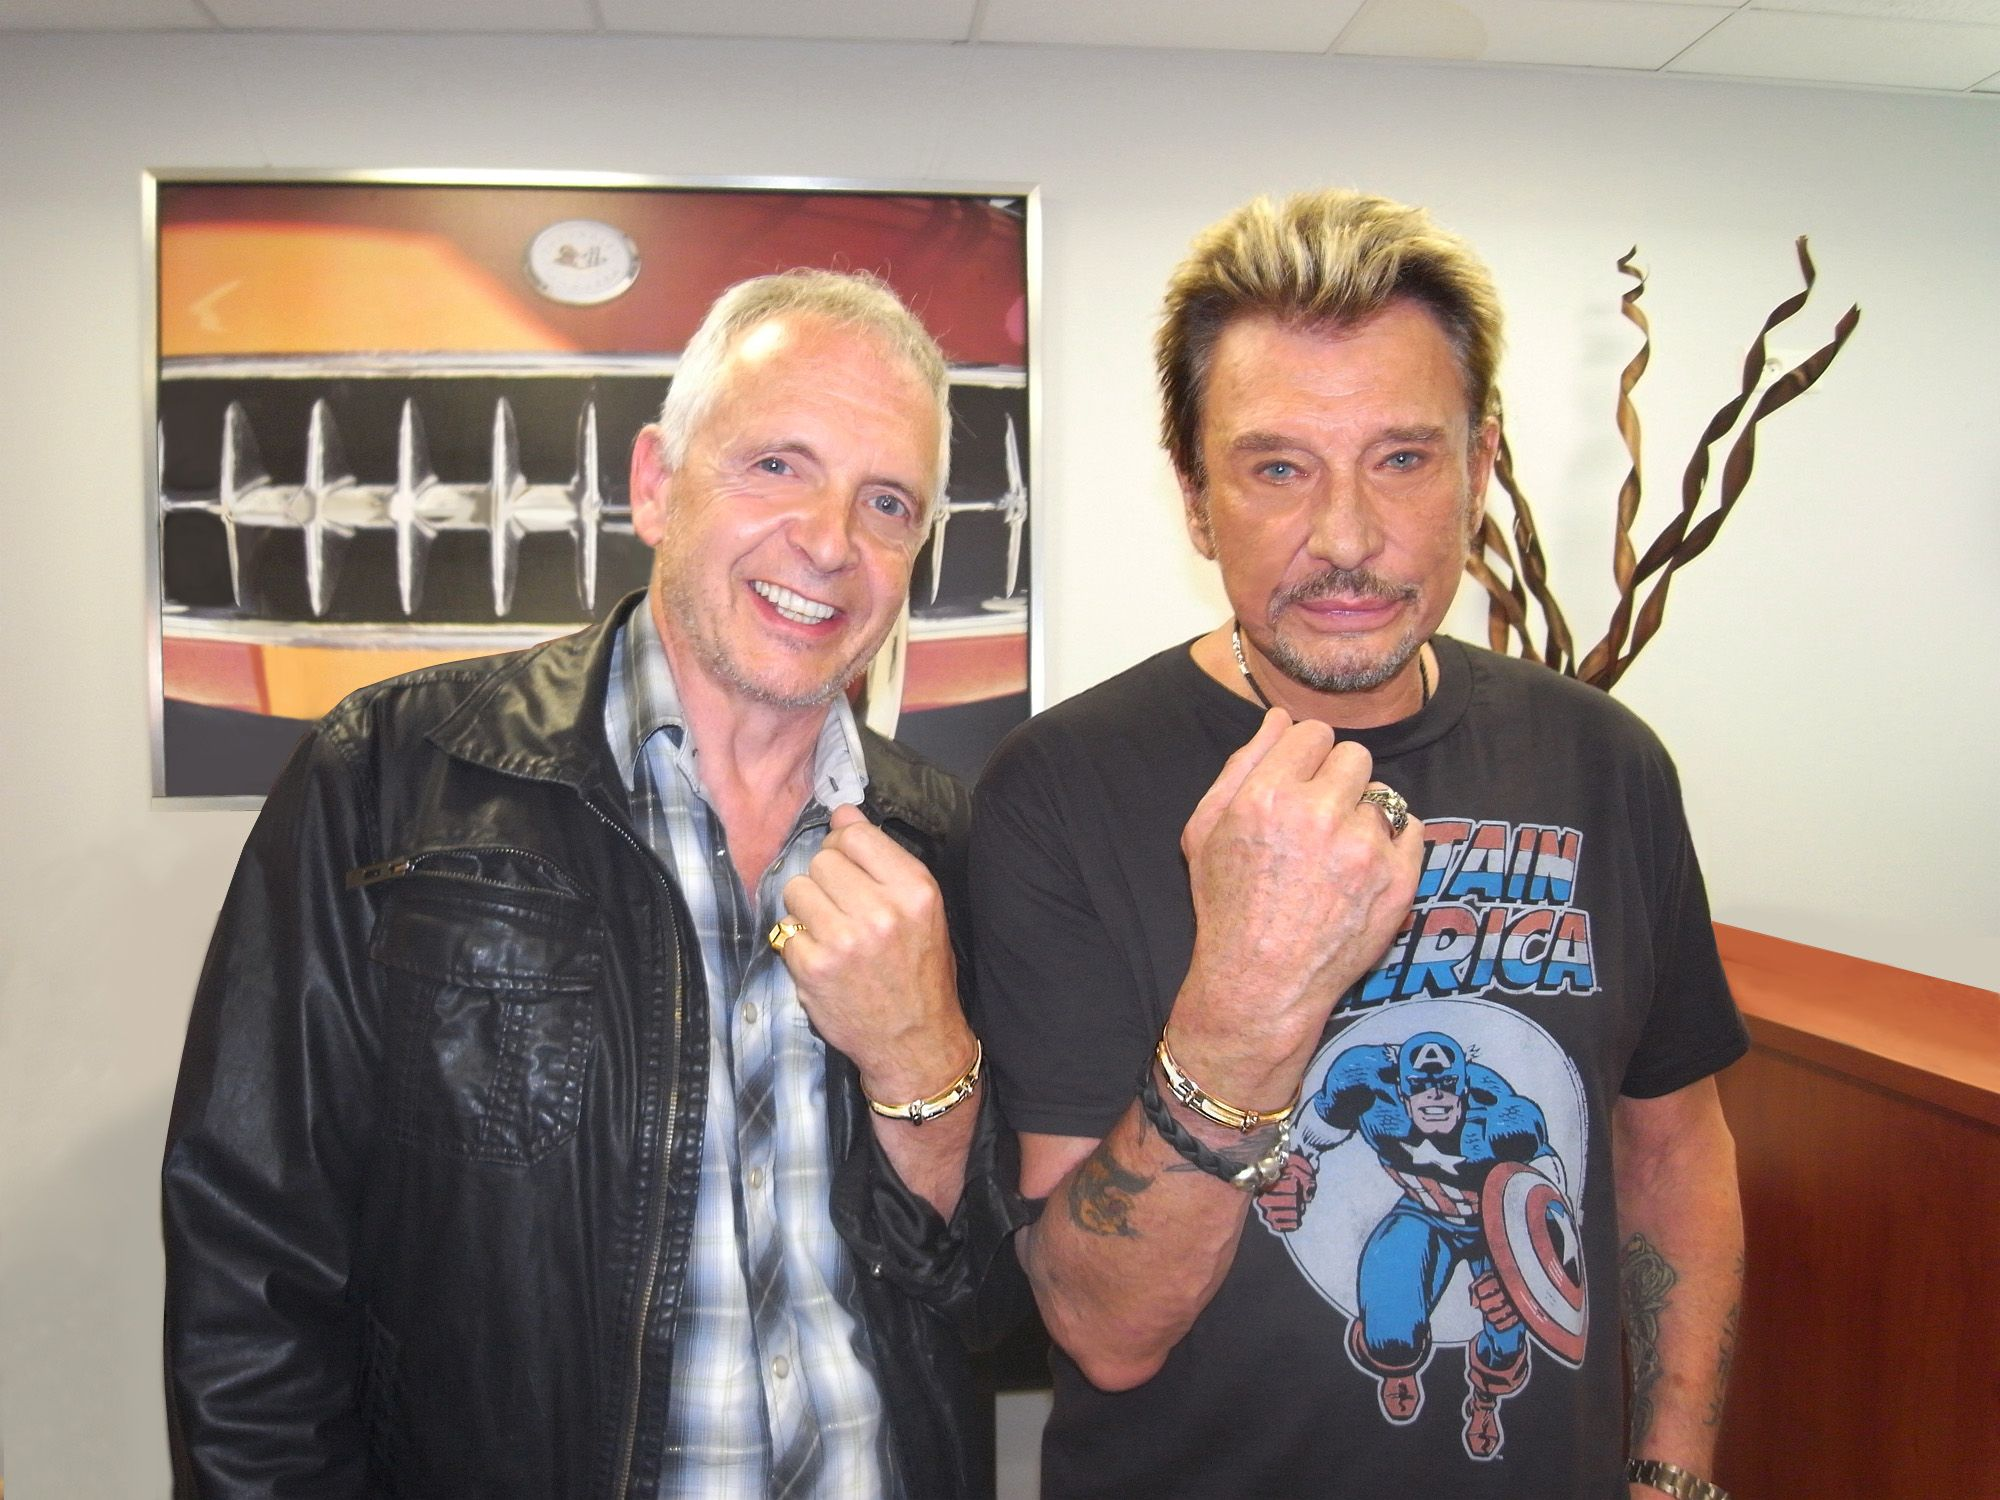 philippe tournaire posant avec johnny hallyday lors de sa tourn e 2009 inaugur e saint etienne. Black Bedroom Furniture Sets. Home Design Ideas